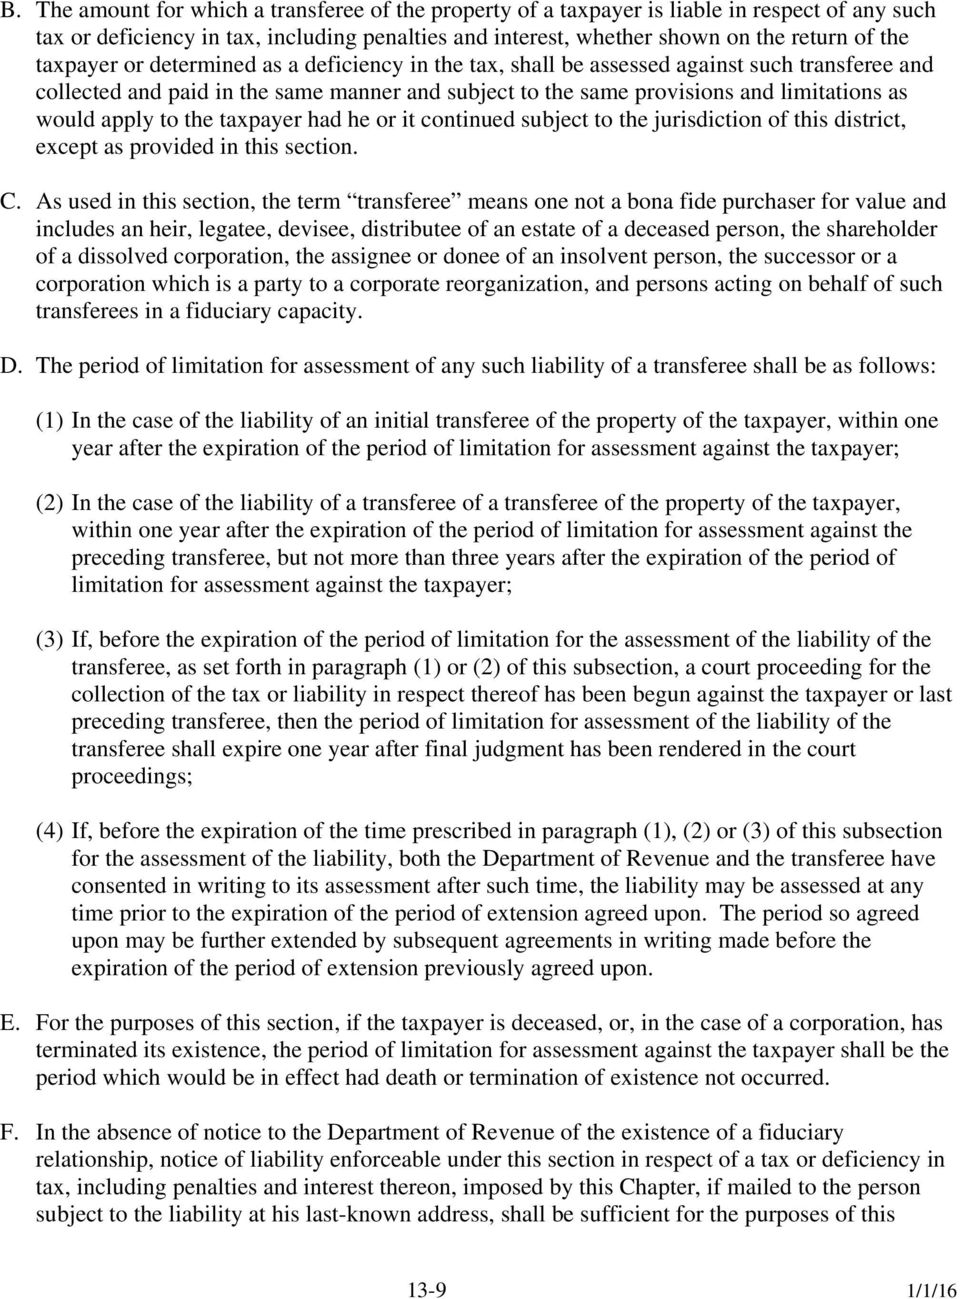 apply to the taxpayer had he or it continued subject to the jurisdiction of this district, except as provided in this section. C.